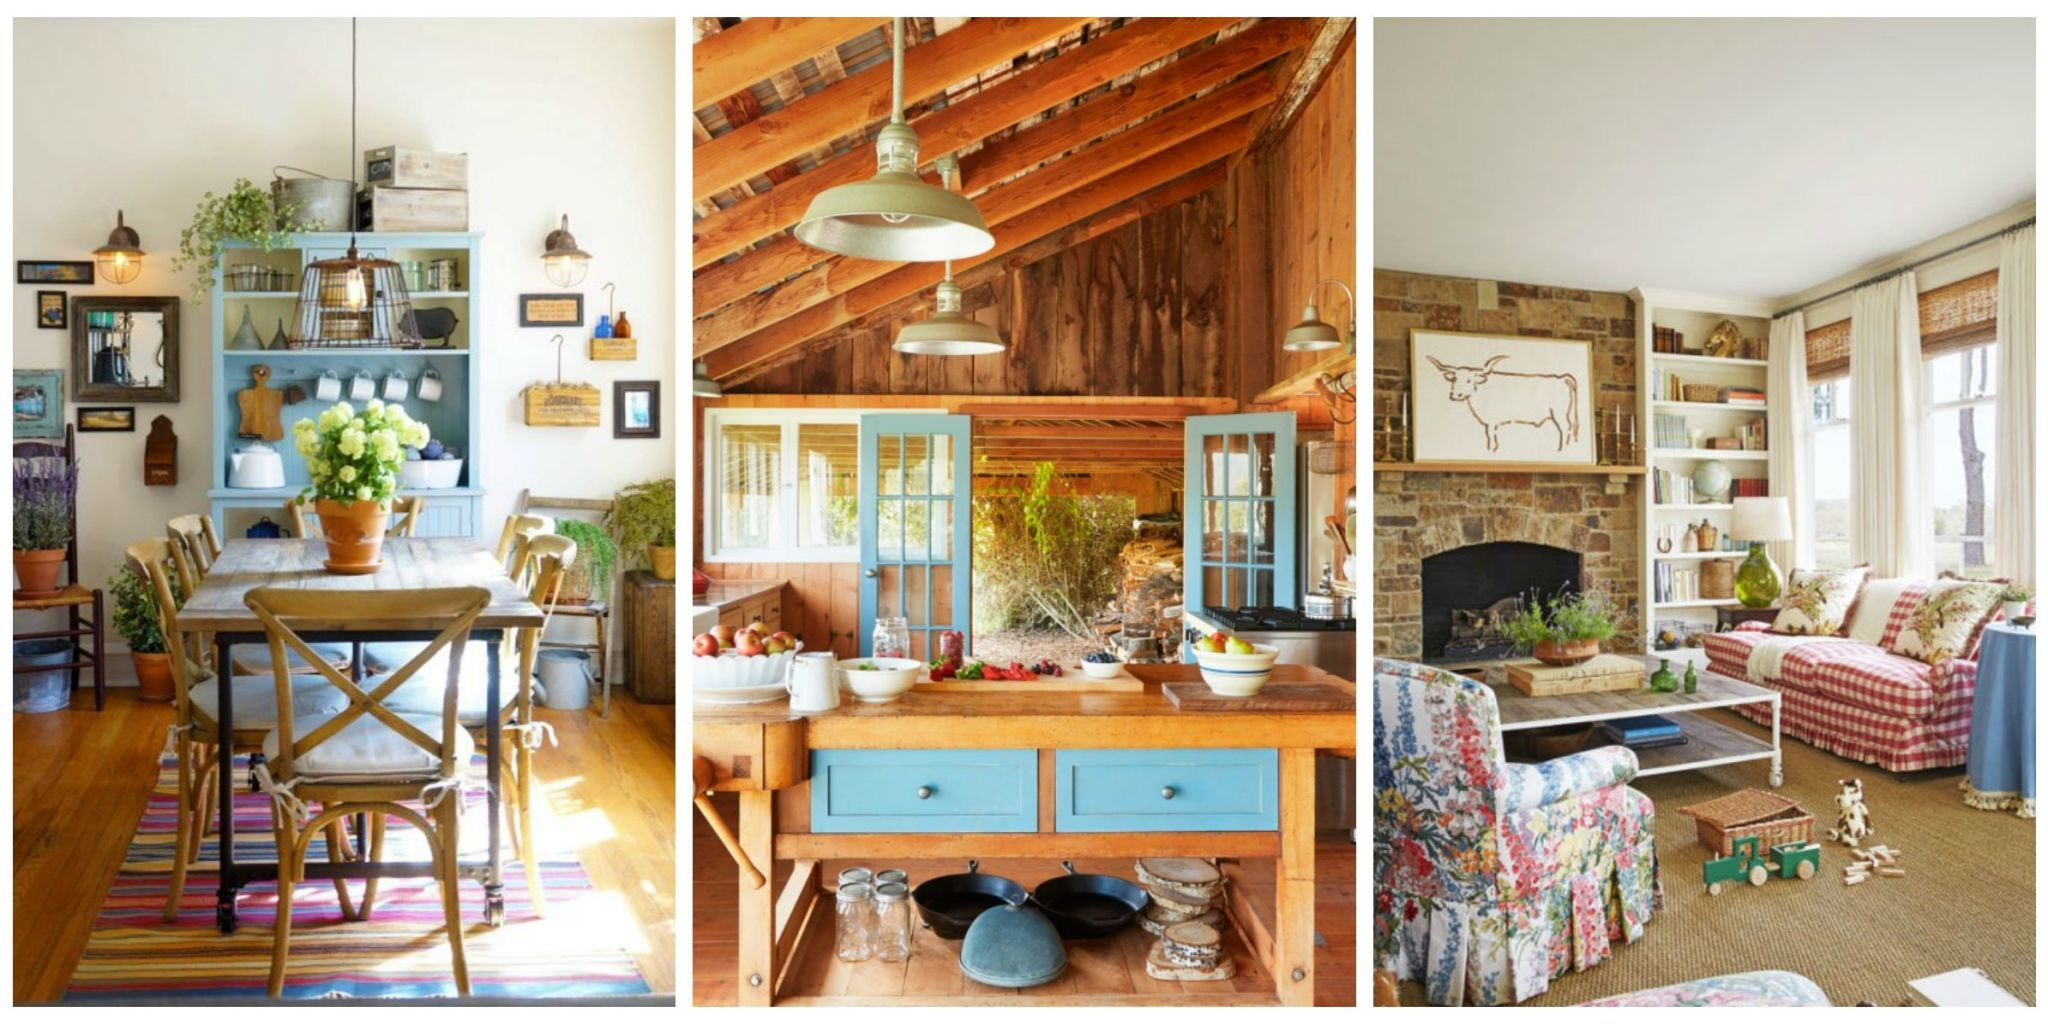 Exceptionnel We Never Tire Of Beautiful Farmhouse Decoru2014from Bedrooms To Kitchens, Take  A Look At These Simple And Rustic Rooms. Want More?